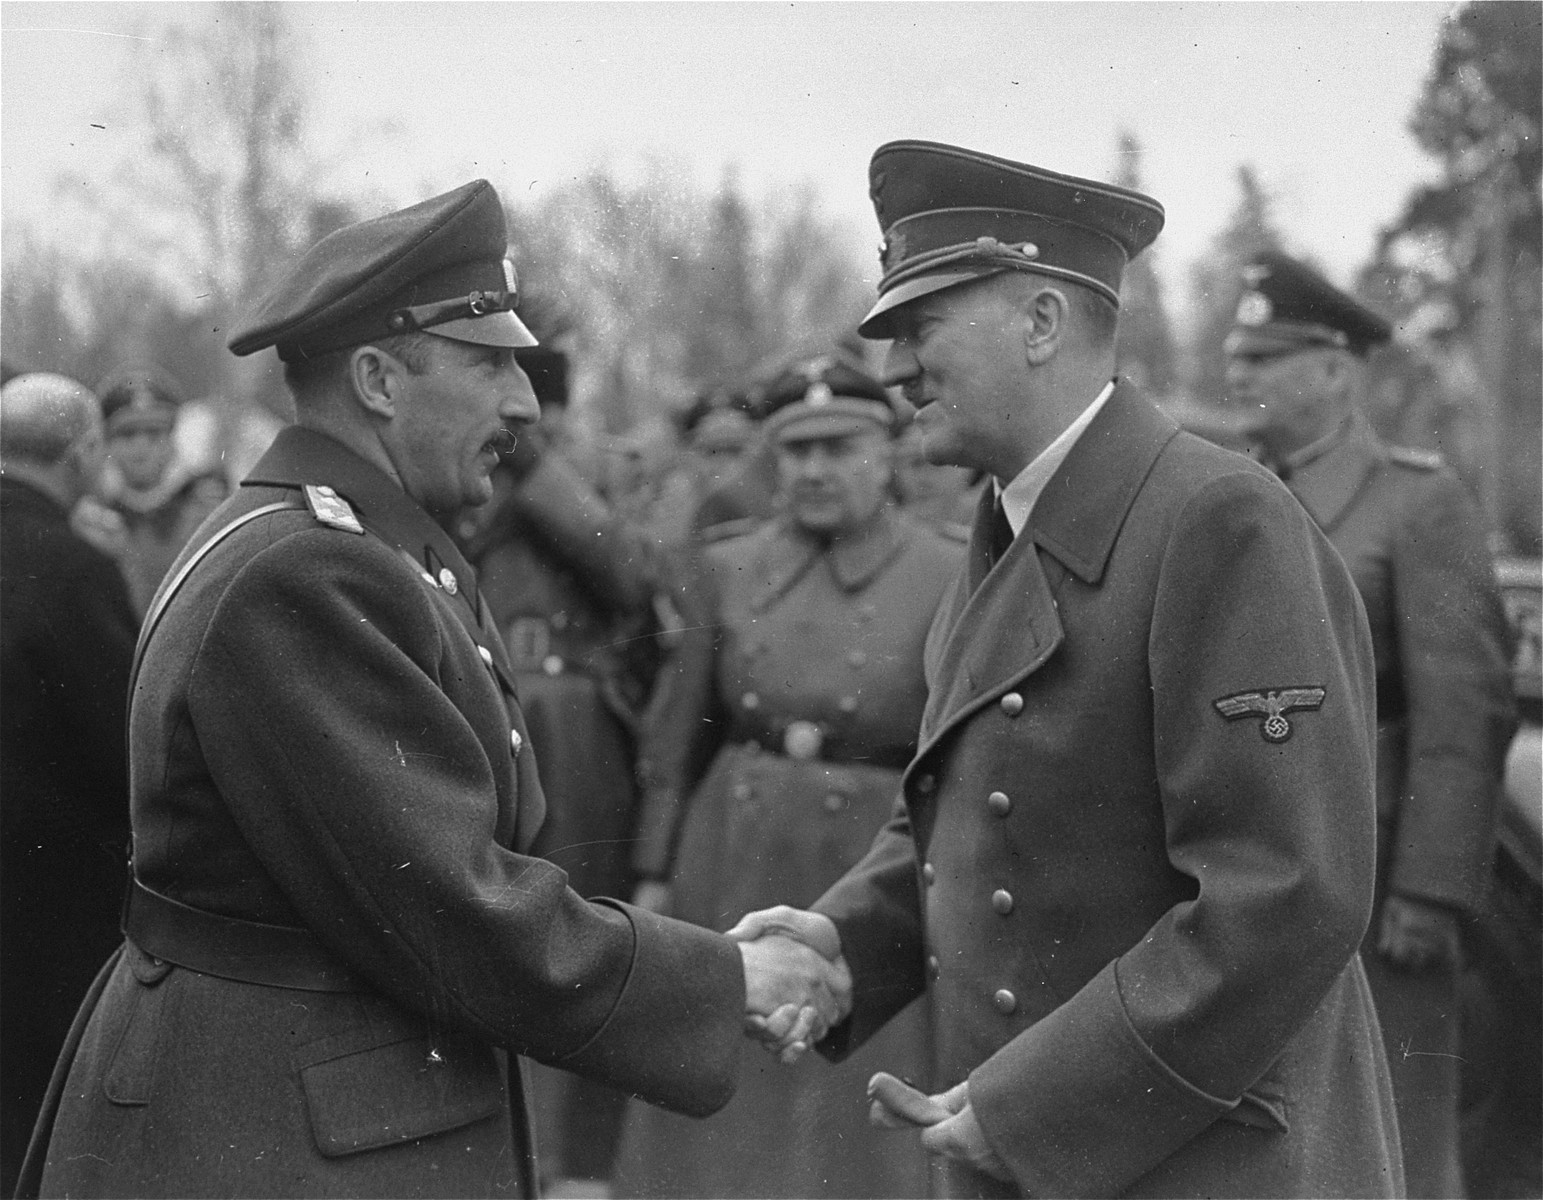 Adolf Hitler greets King Boris of Bulgaria on the occasion of the king's visit to Germany.